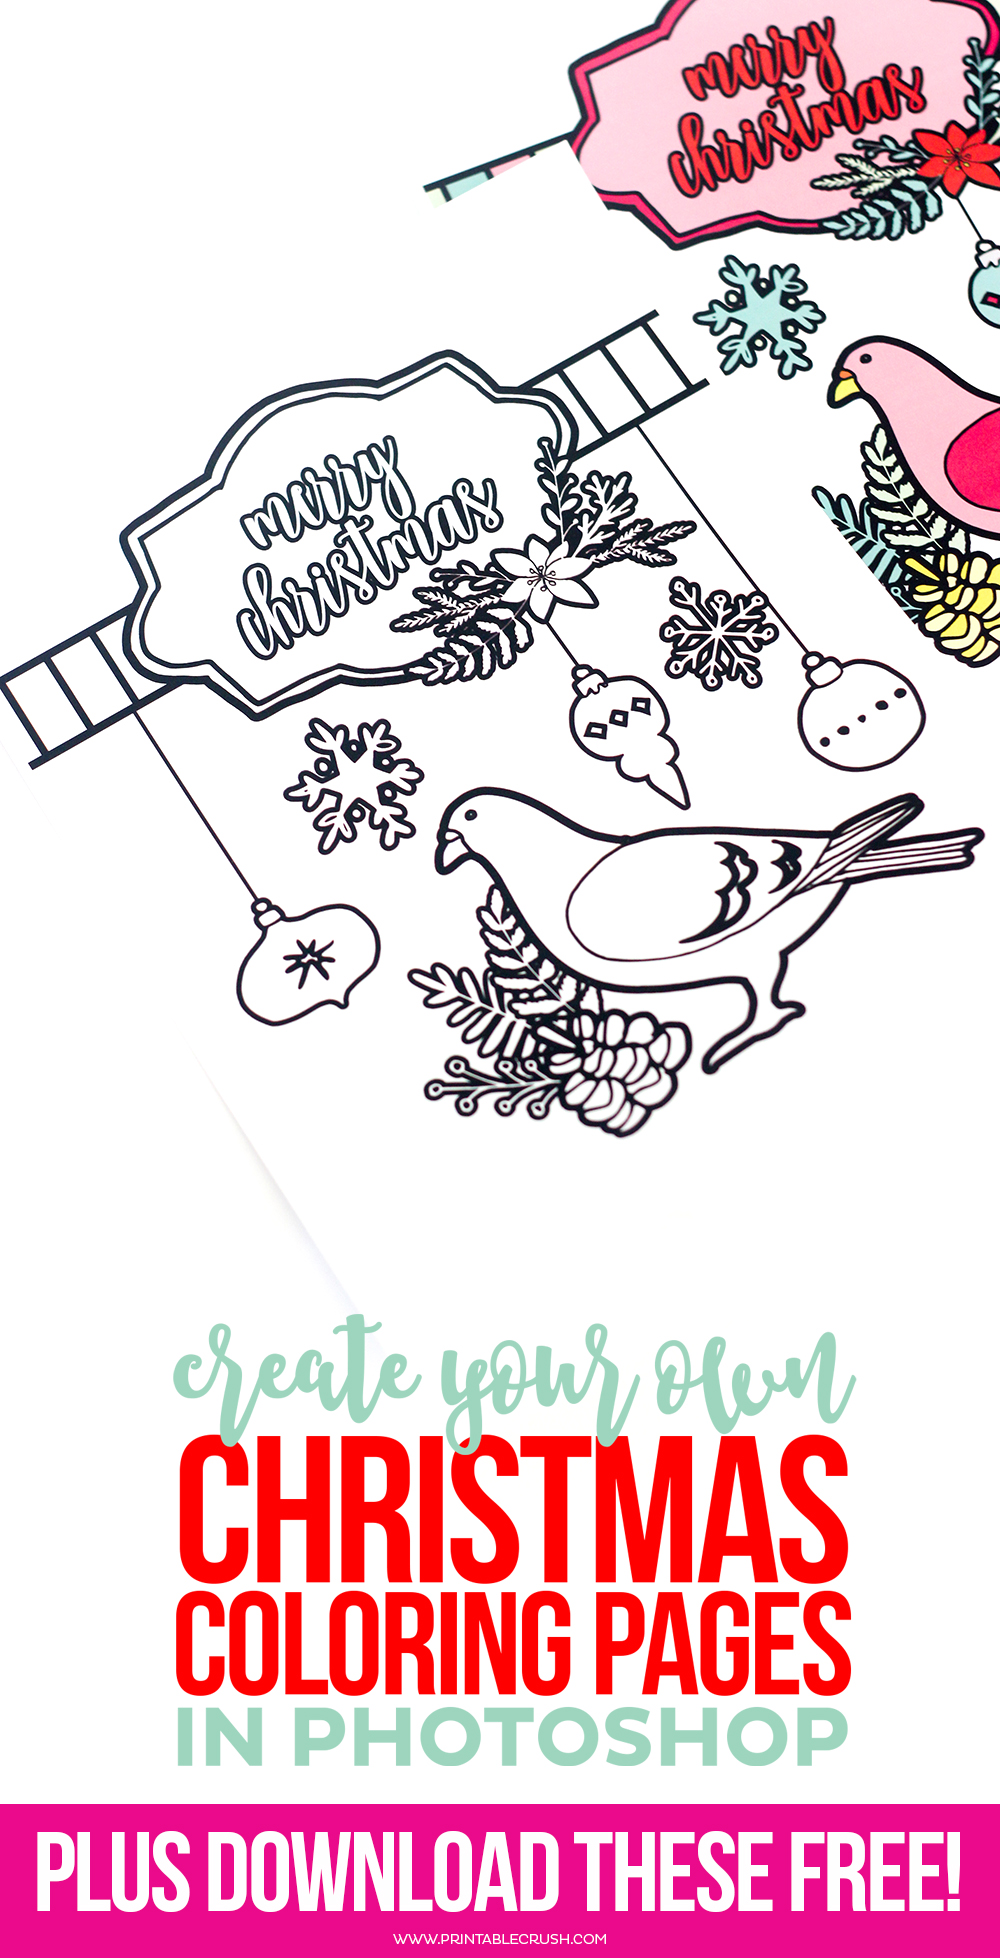 Christmas coloring pages pin